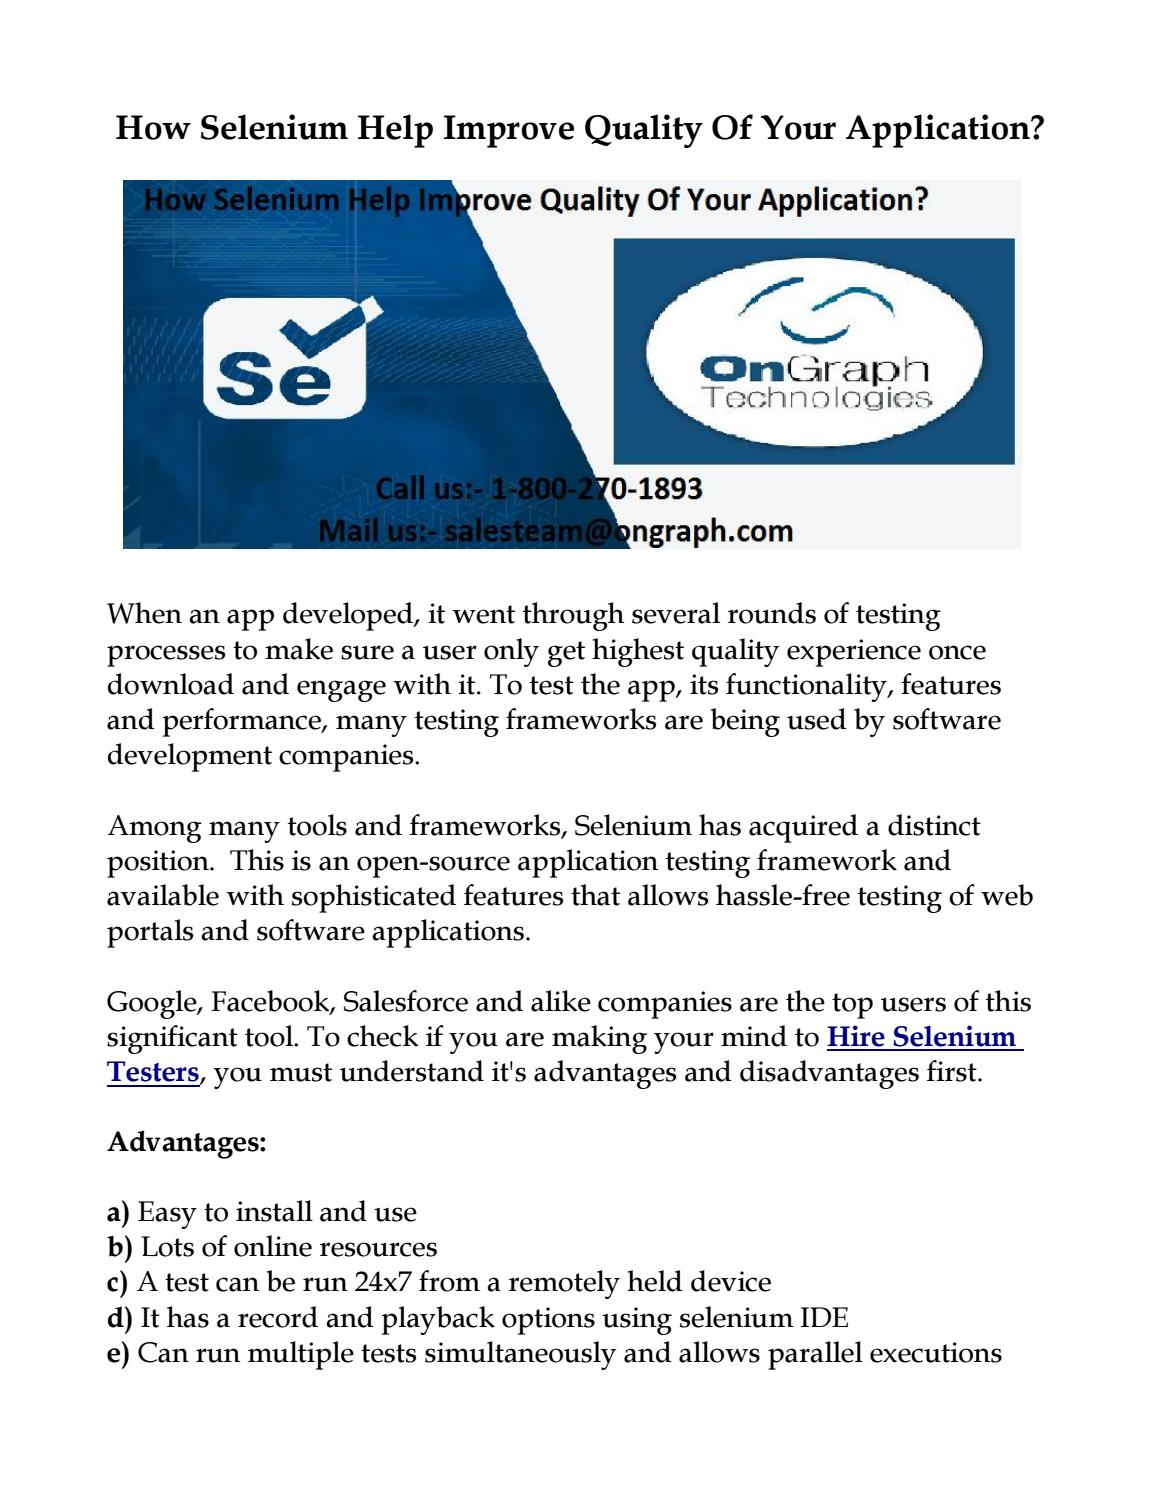 How Selenium Help Improve Quality Of Your Application? by